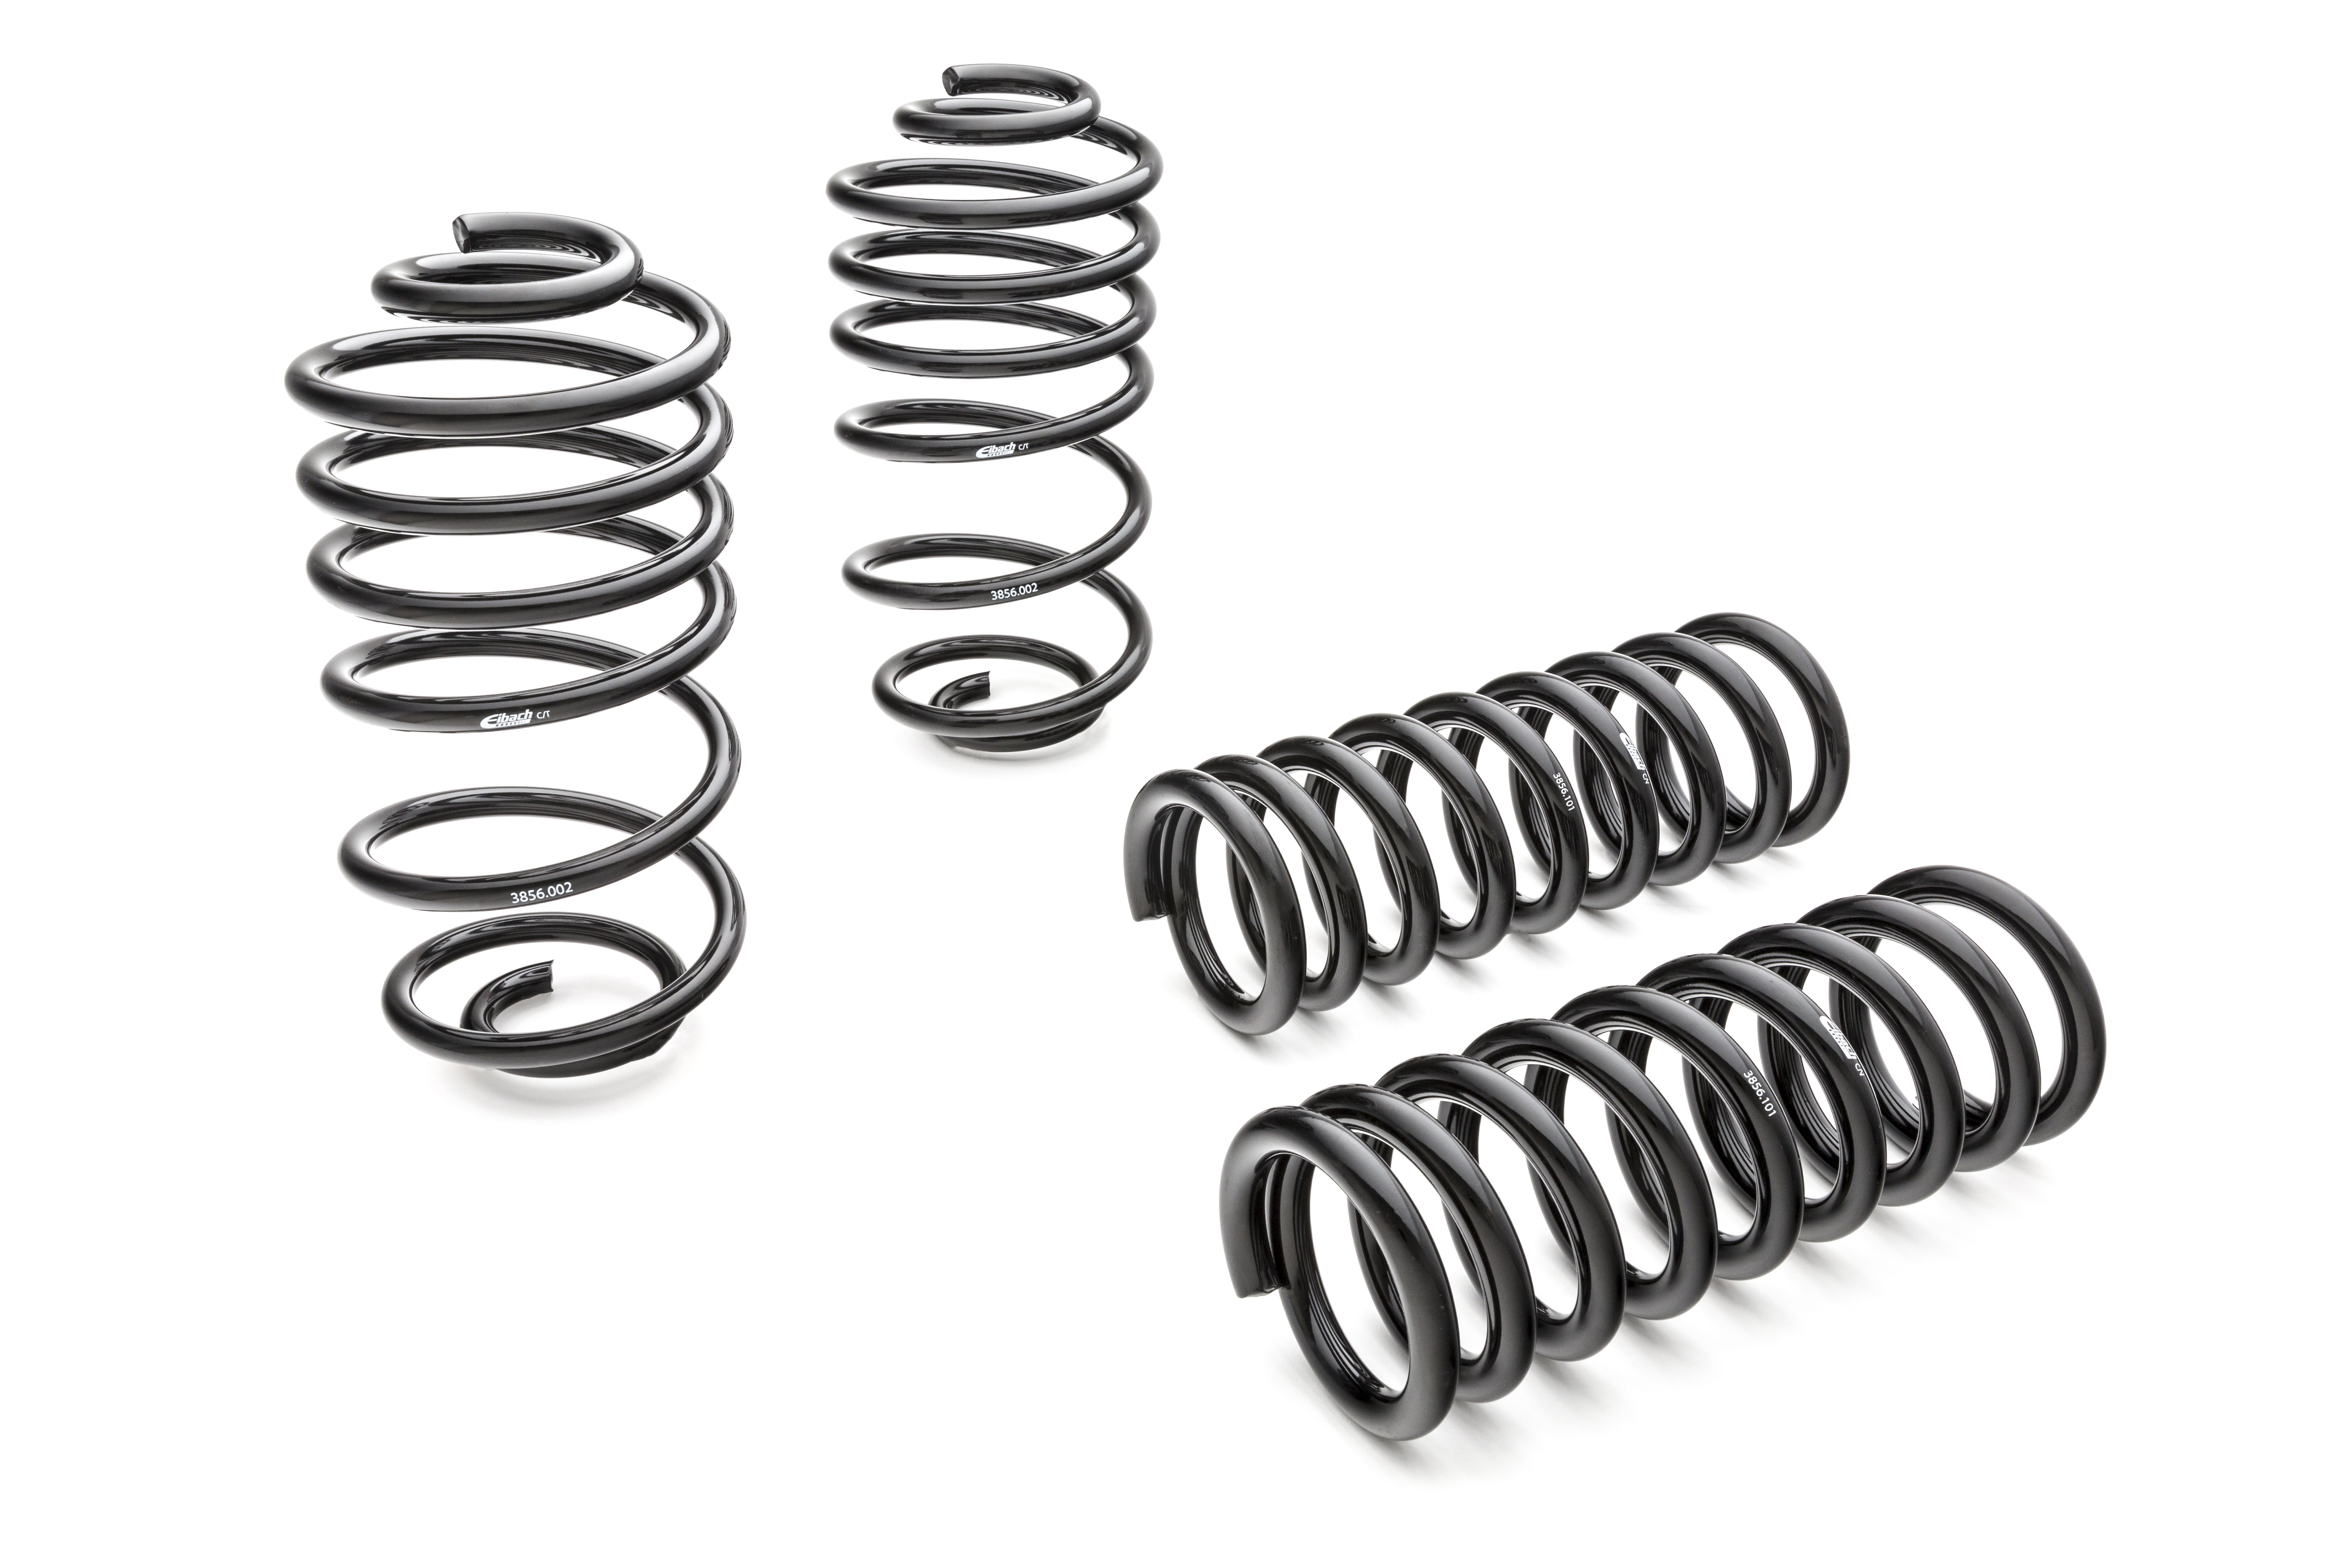 EIBACH PRO-KIT PERFORMANCE SPRINGS FITS 1967-1972 BUICK